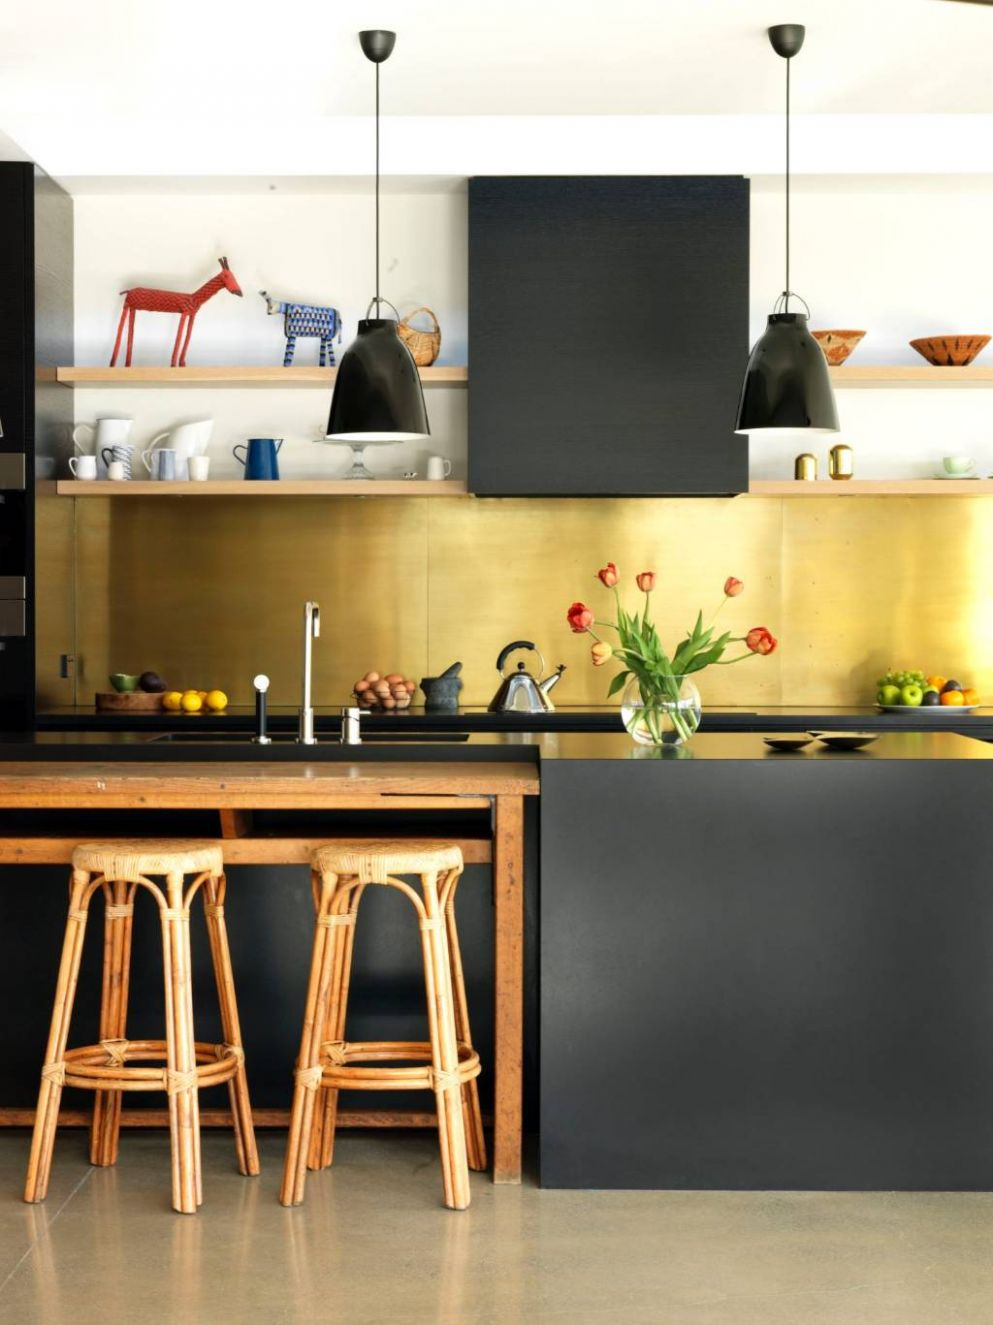 Six cute kitchen splashback ideas | Stuff.co